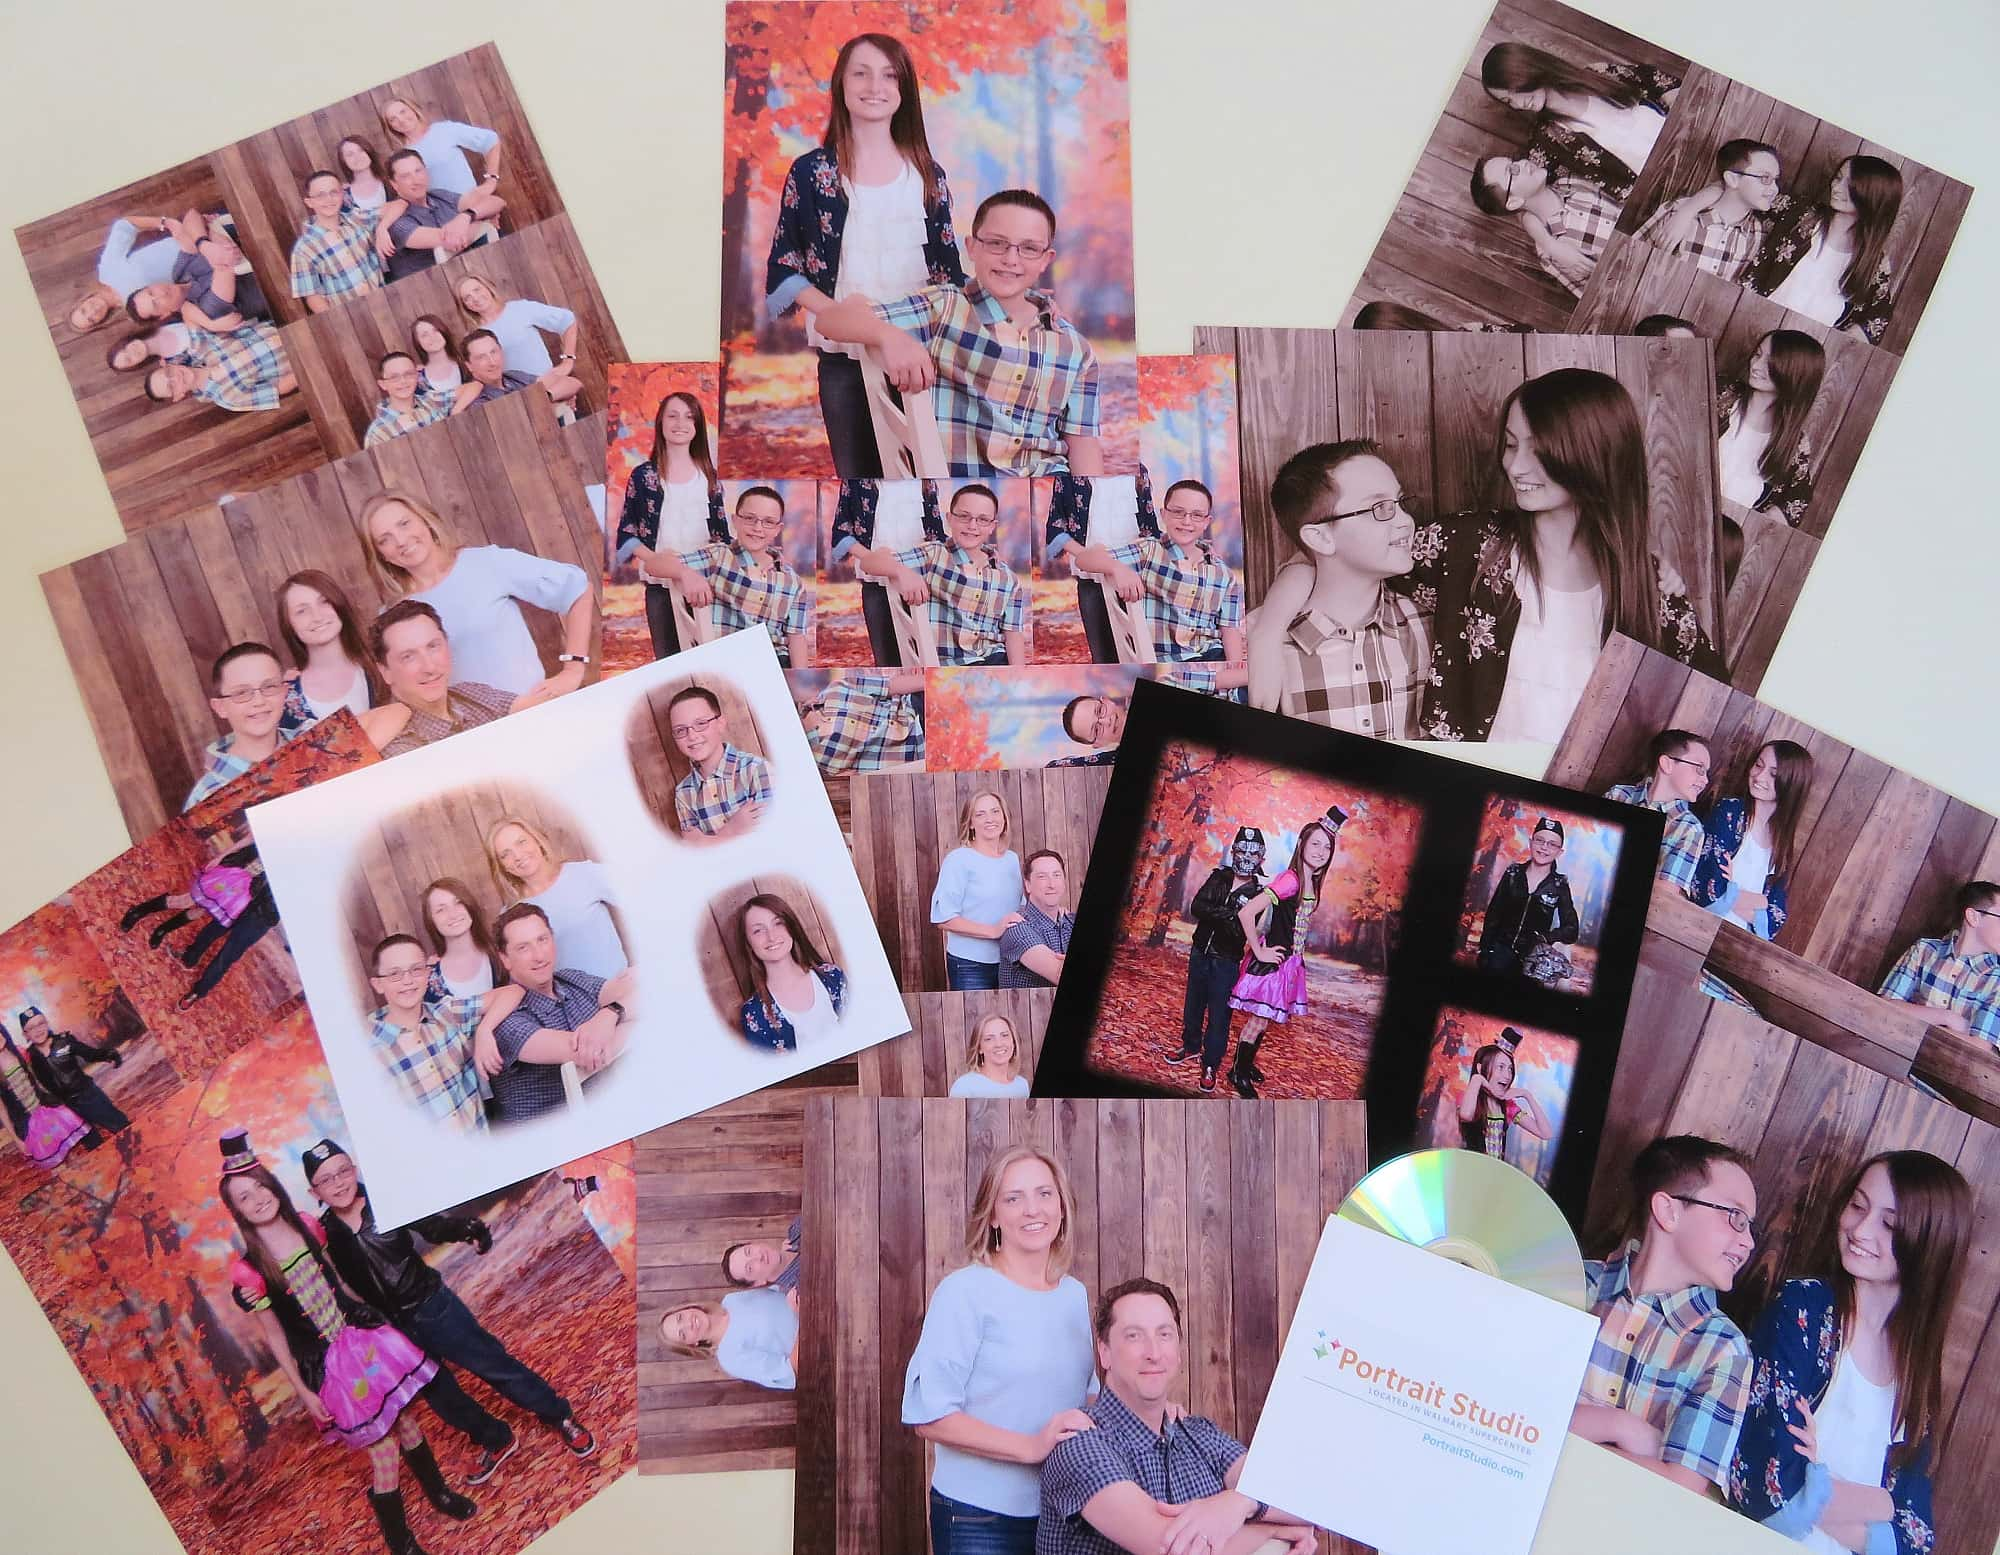 Win a six-pose Portrait Studio portrait package including: two sheets of any size per pose, two 8x10 special effects decorator portraits, and one high resolution CD of all portrait images